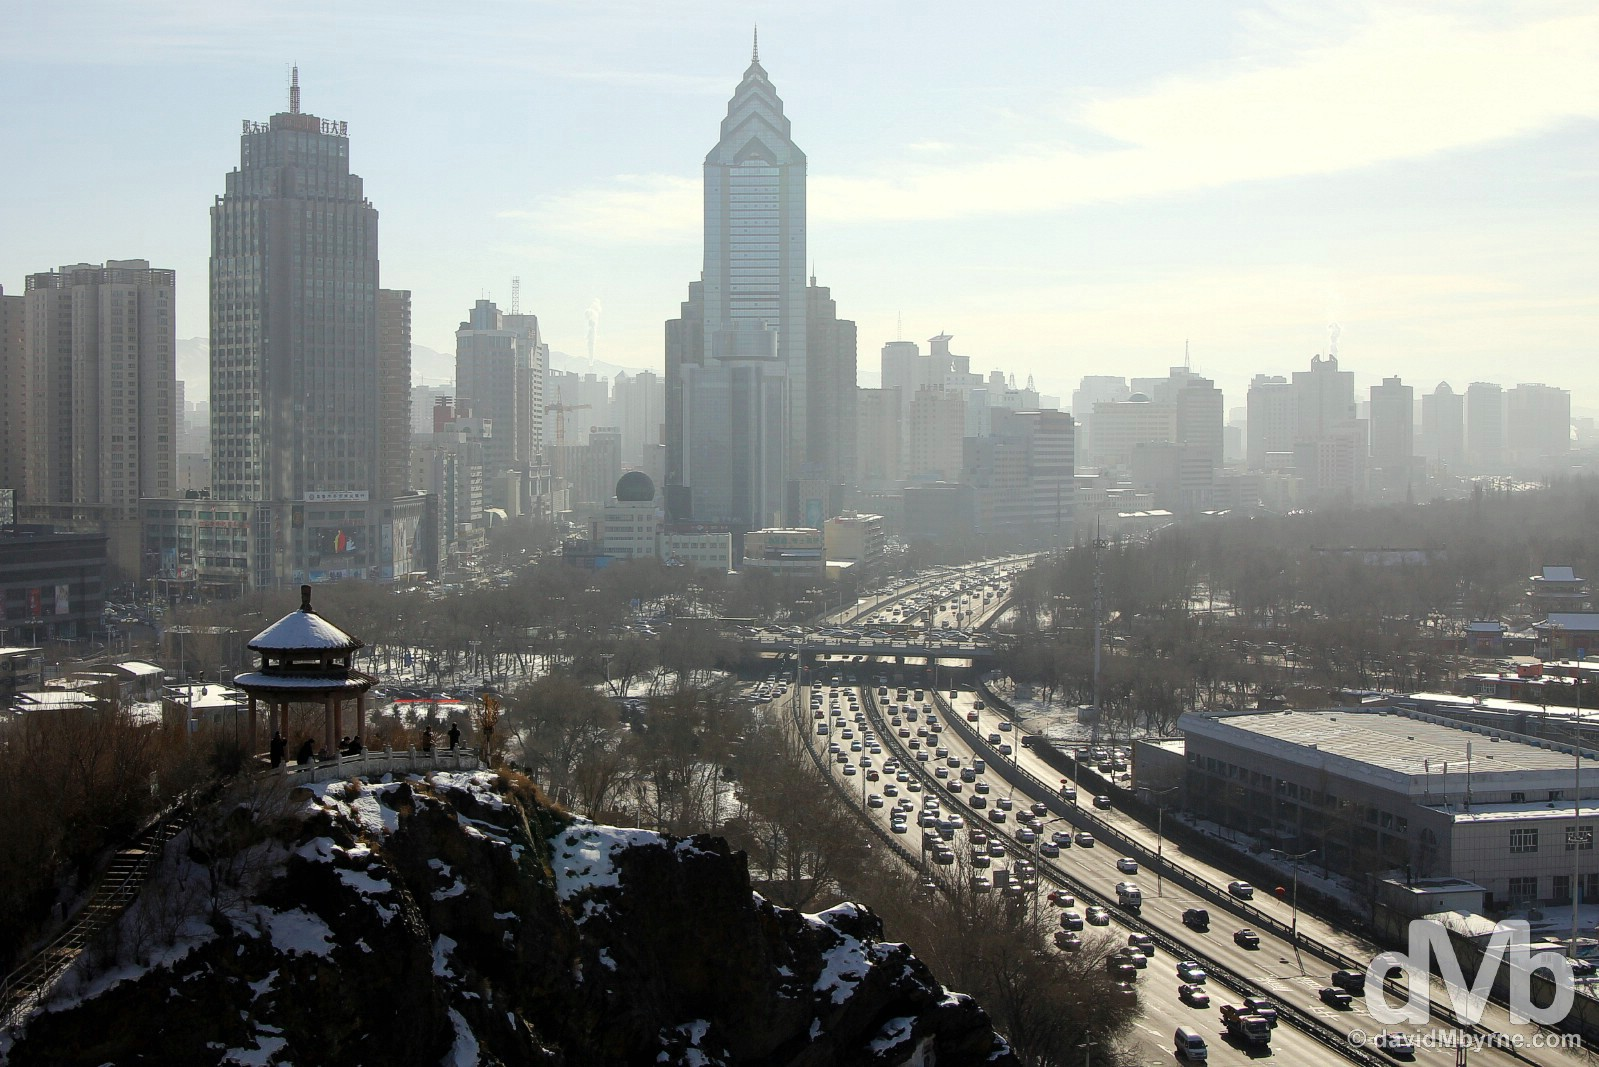 Urumqi as seen from the highest point in the city's Hongshan (Red Hill) Park. Urumqi, northwestern China. February 11, 2015.